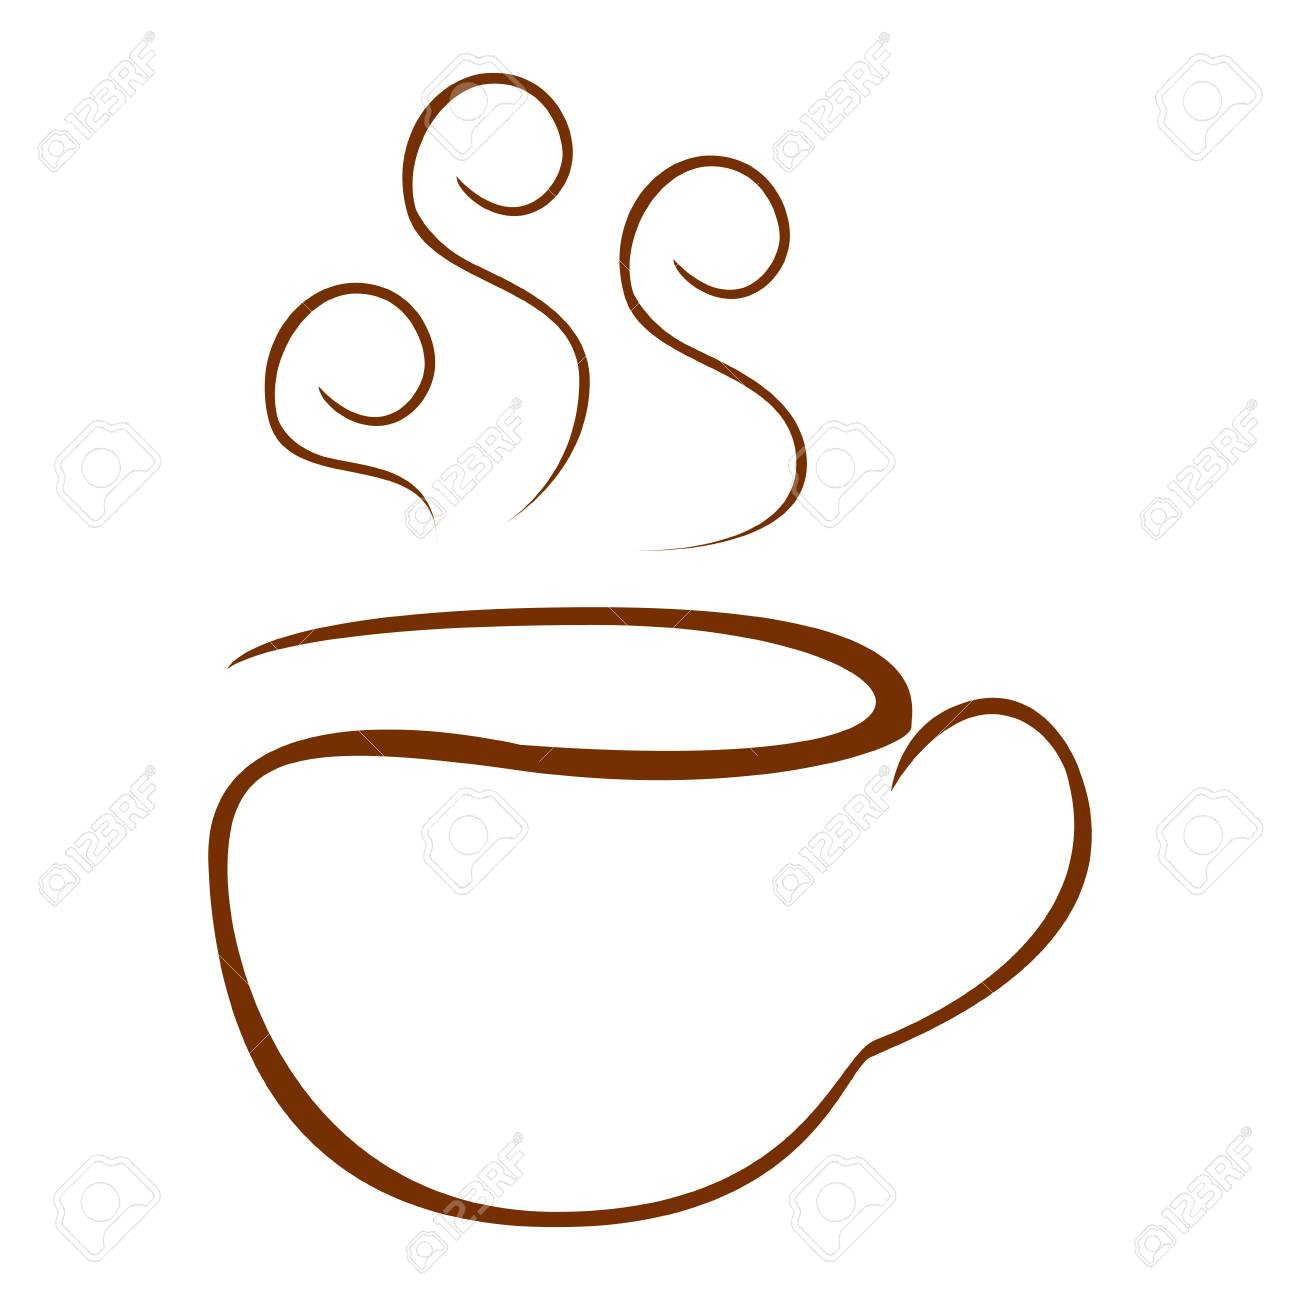 Isolated Abstract Coffee Mug Logo Vector Illustration Royalty Free Cliparts Vectors And Stock Illustration Image 87564528